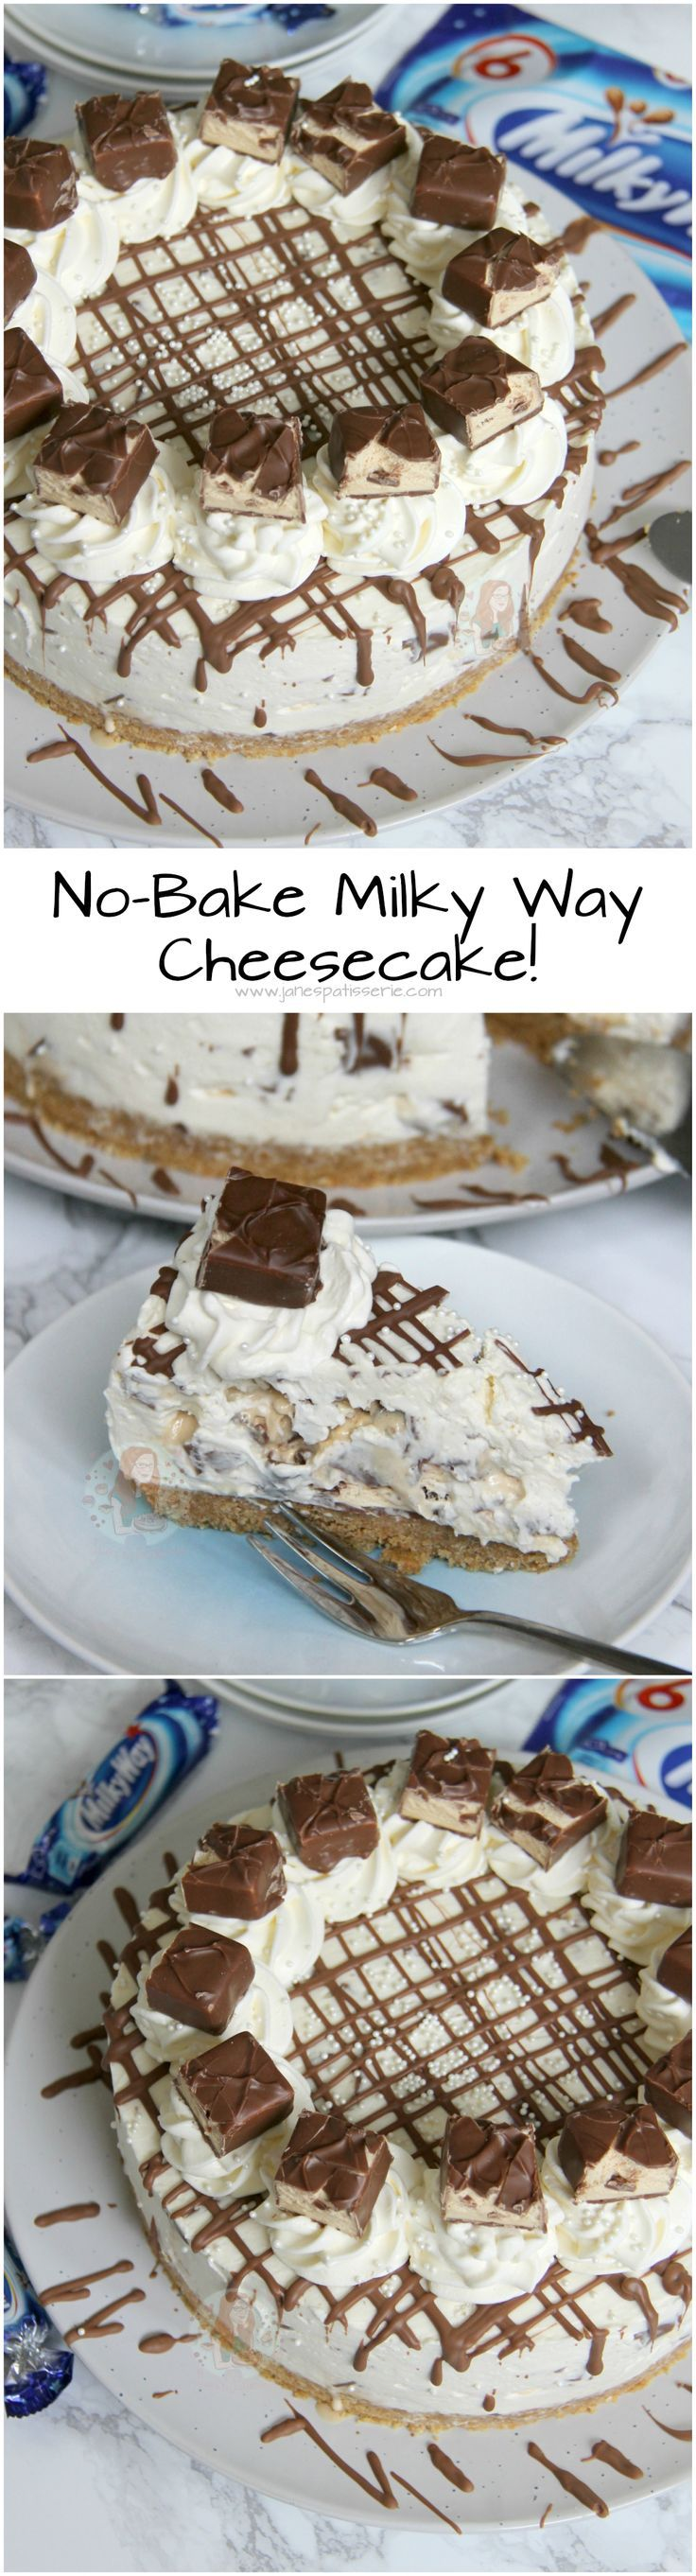 No-Bake Milky Way Cheesecake! ❤️ A Buttery Digestive Base, Vanilla Cheesecake with Milky Way Pieces Running Through, and even more Deliciousness on top!